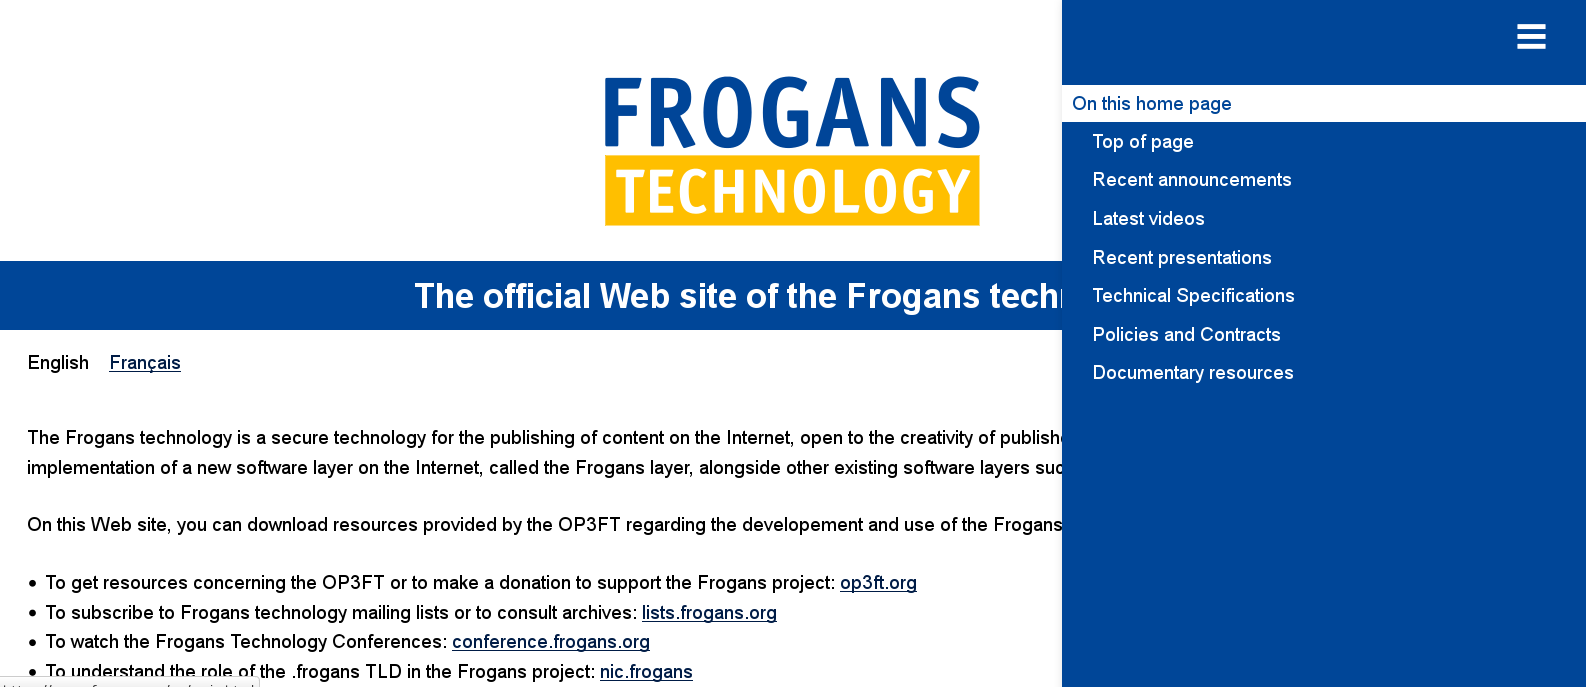 New frogans.org Web site